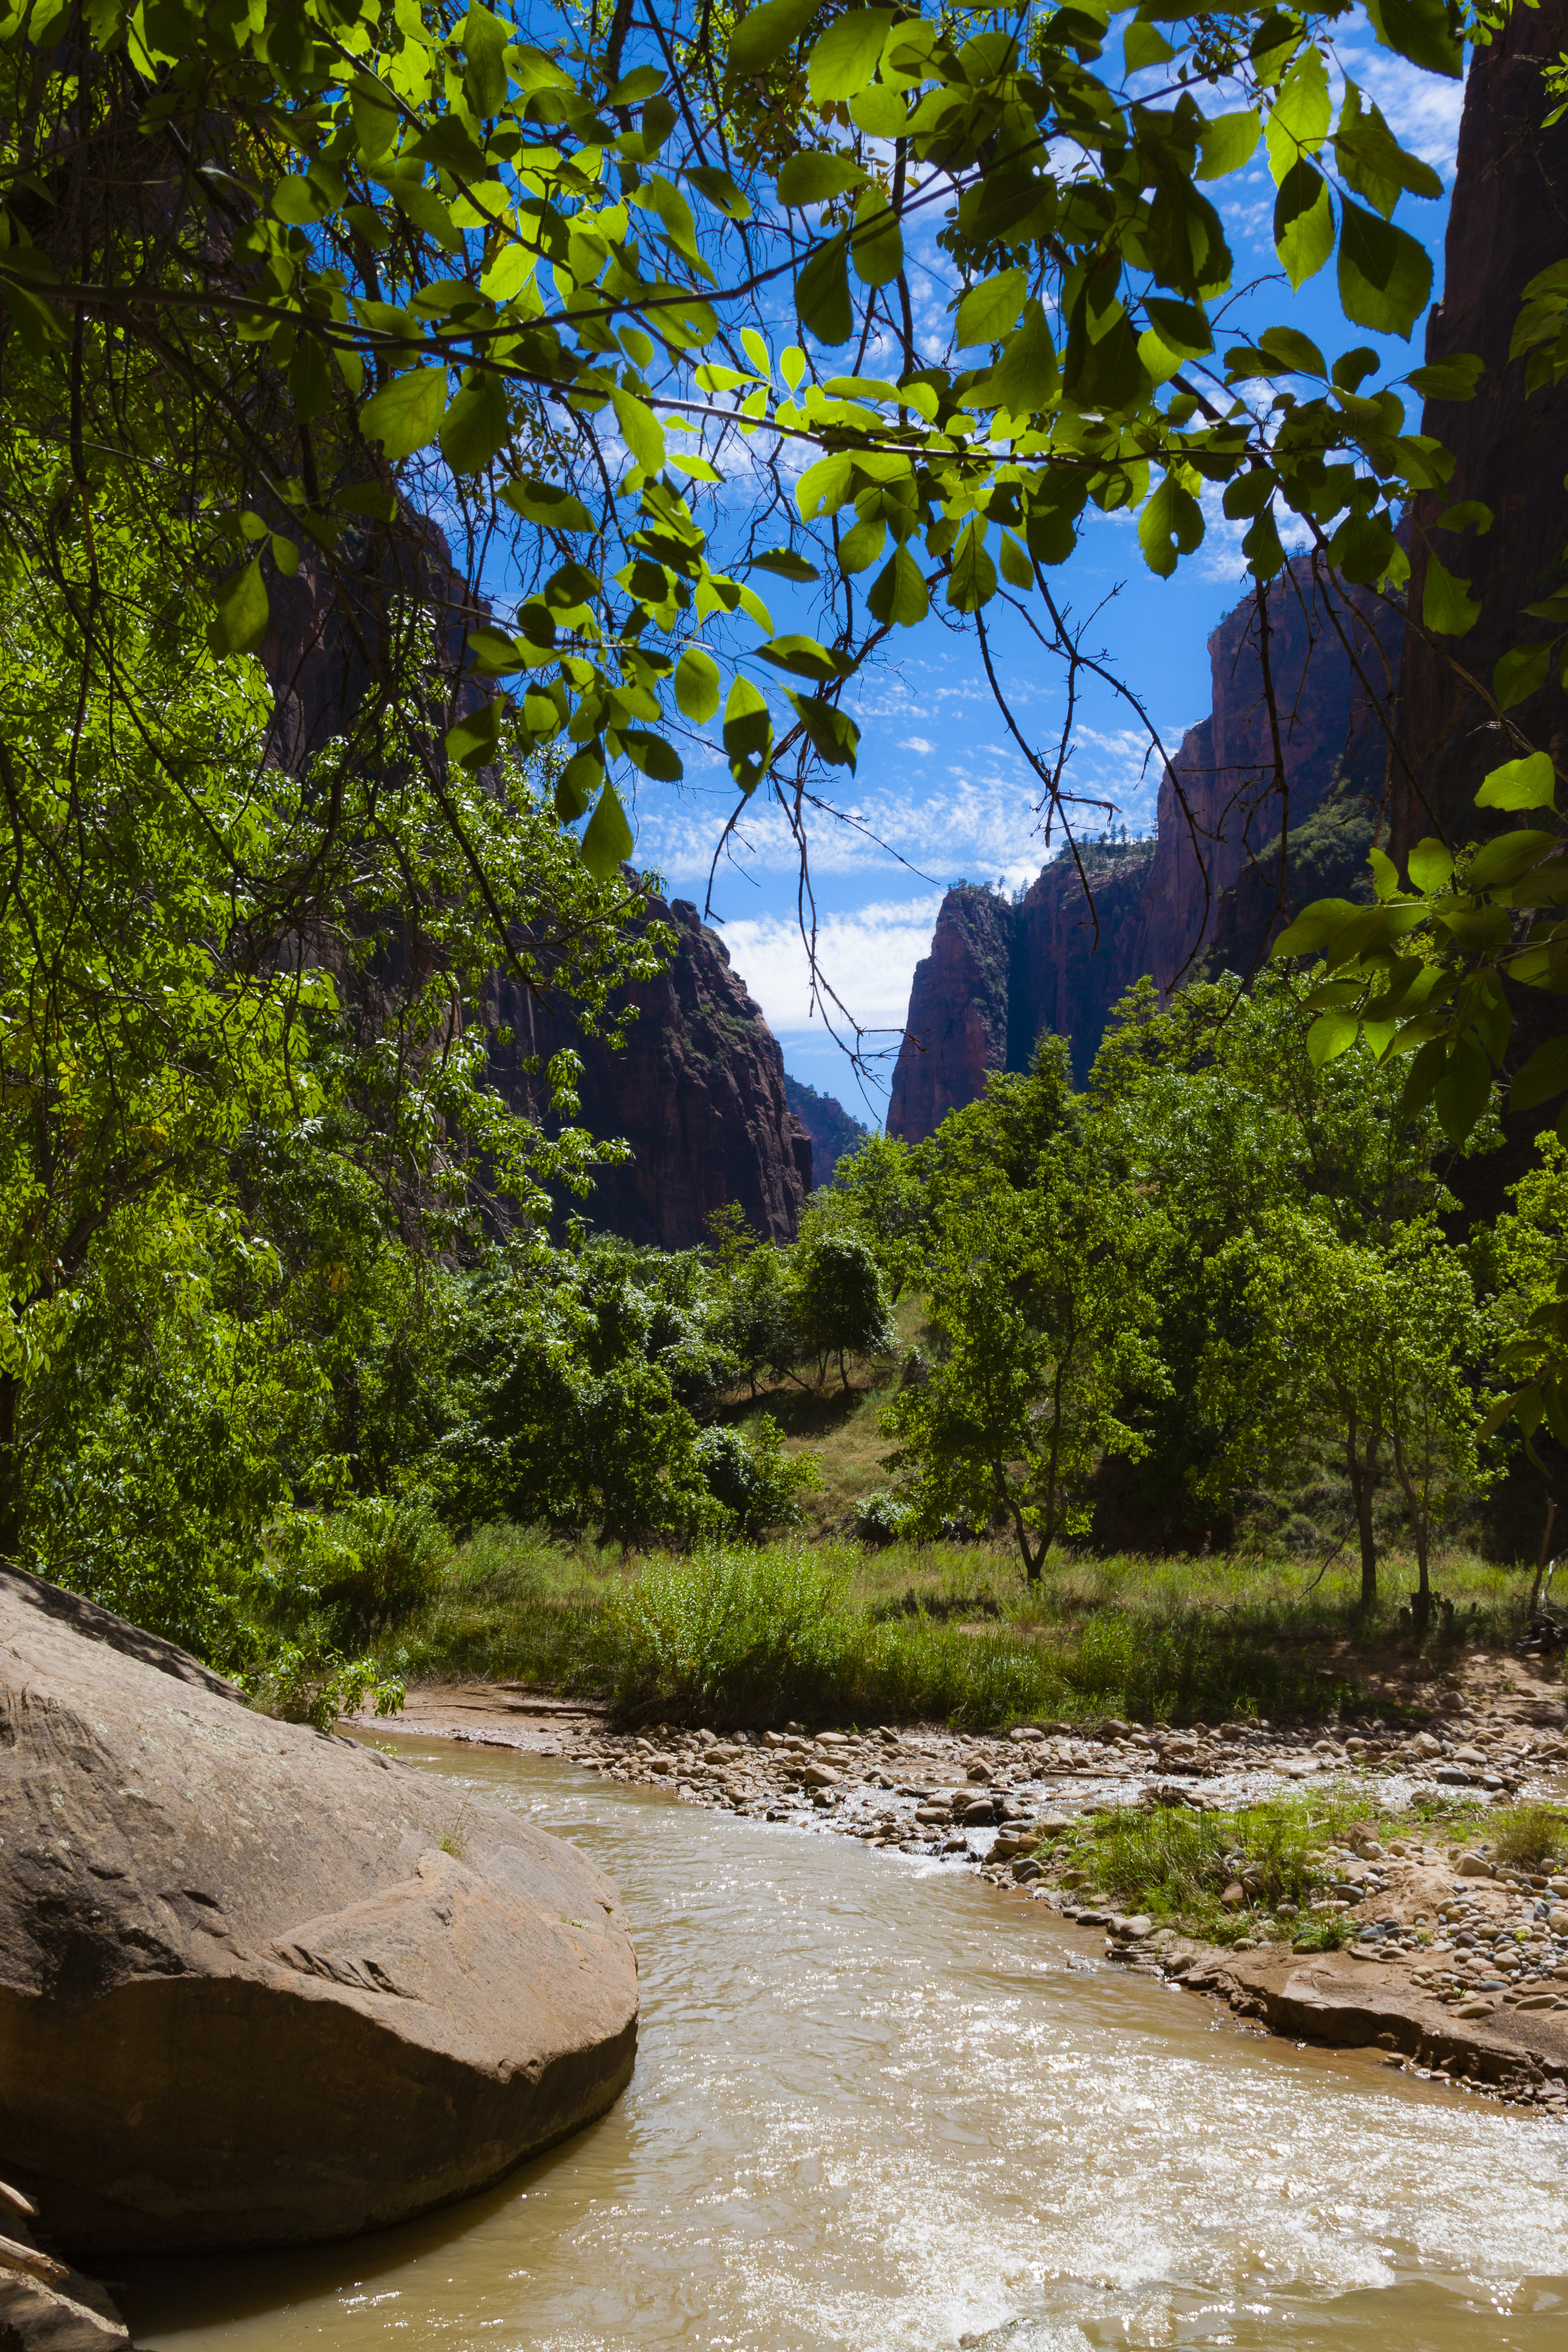 126770 download wallpaper Nature, Rivers, Trees, Stones, Mountains, Branches screensavers and pictures for free